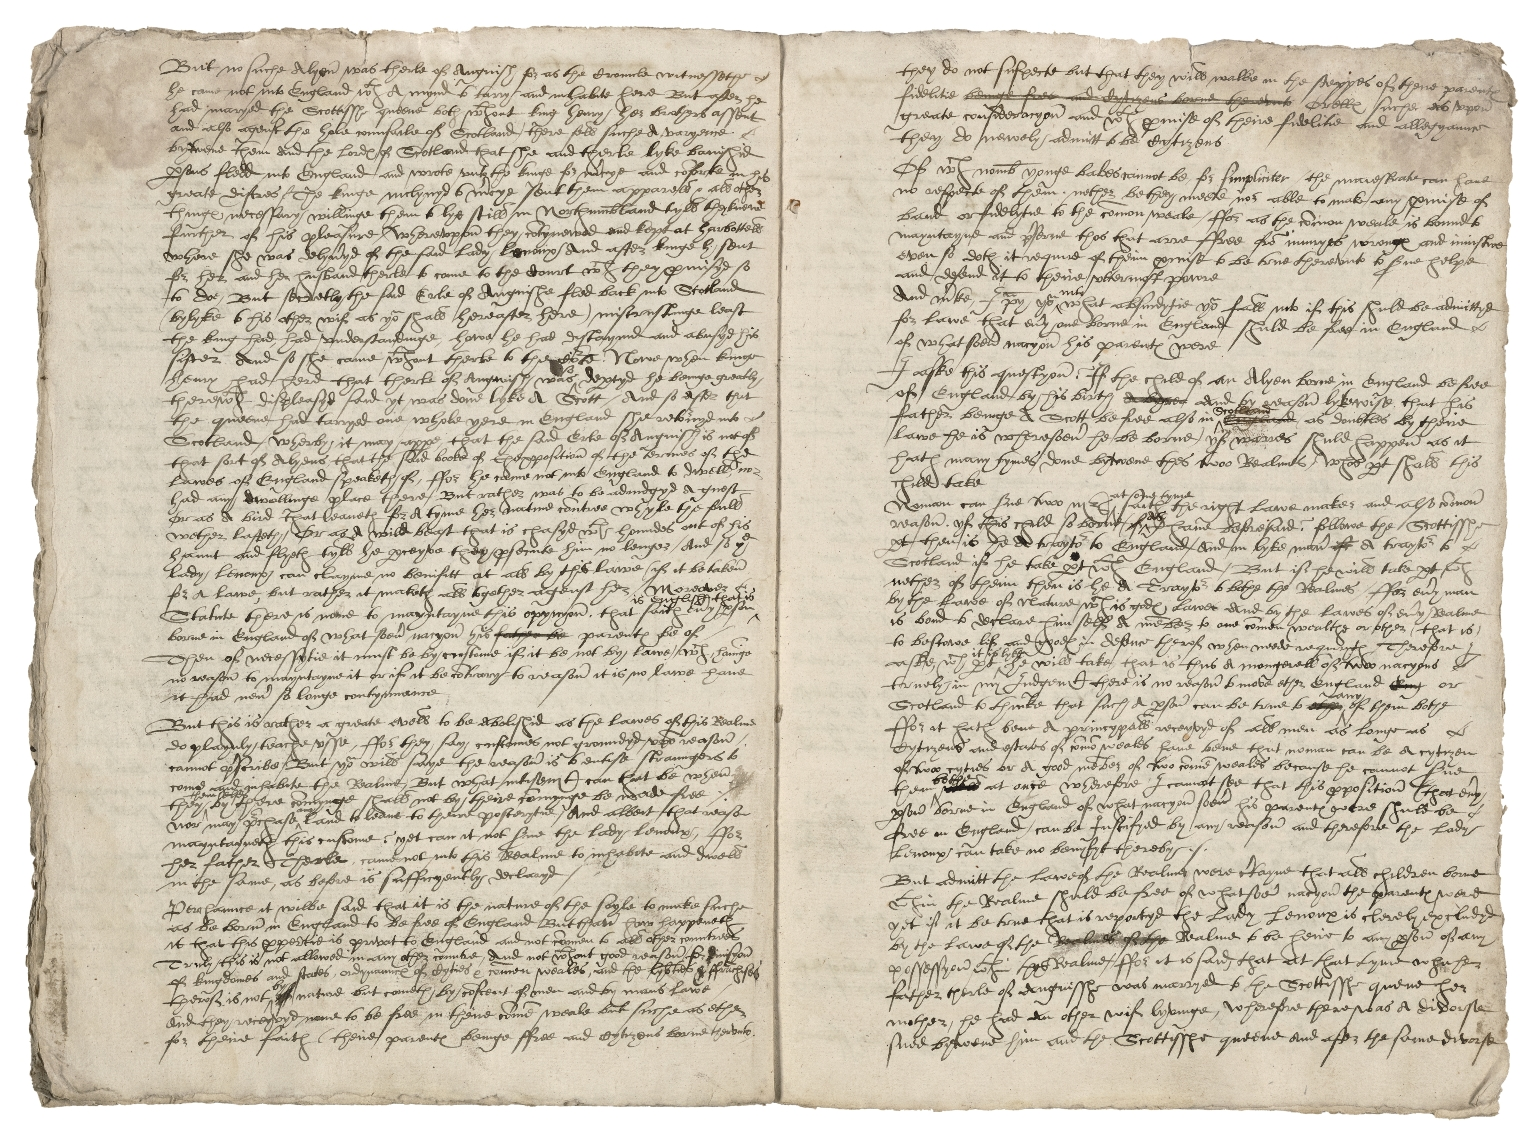 A declaratyon of the successyon of the crowne imperyall of England